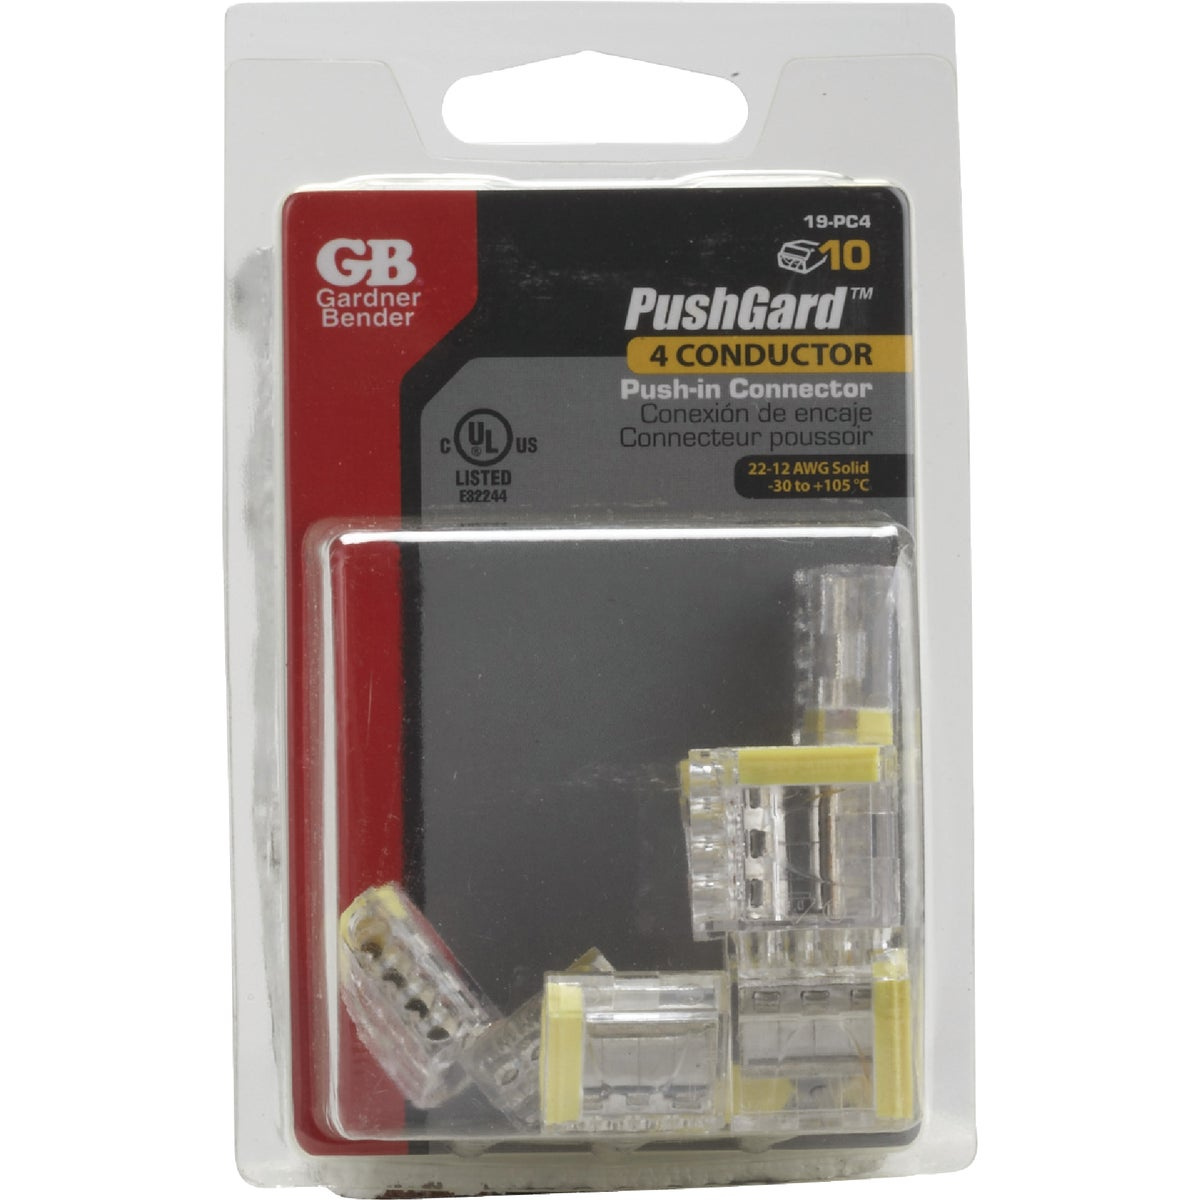 4-PORT INSURE CONNECTOR - 19-PC4 by G B Electrical Inc